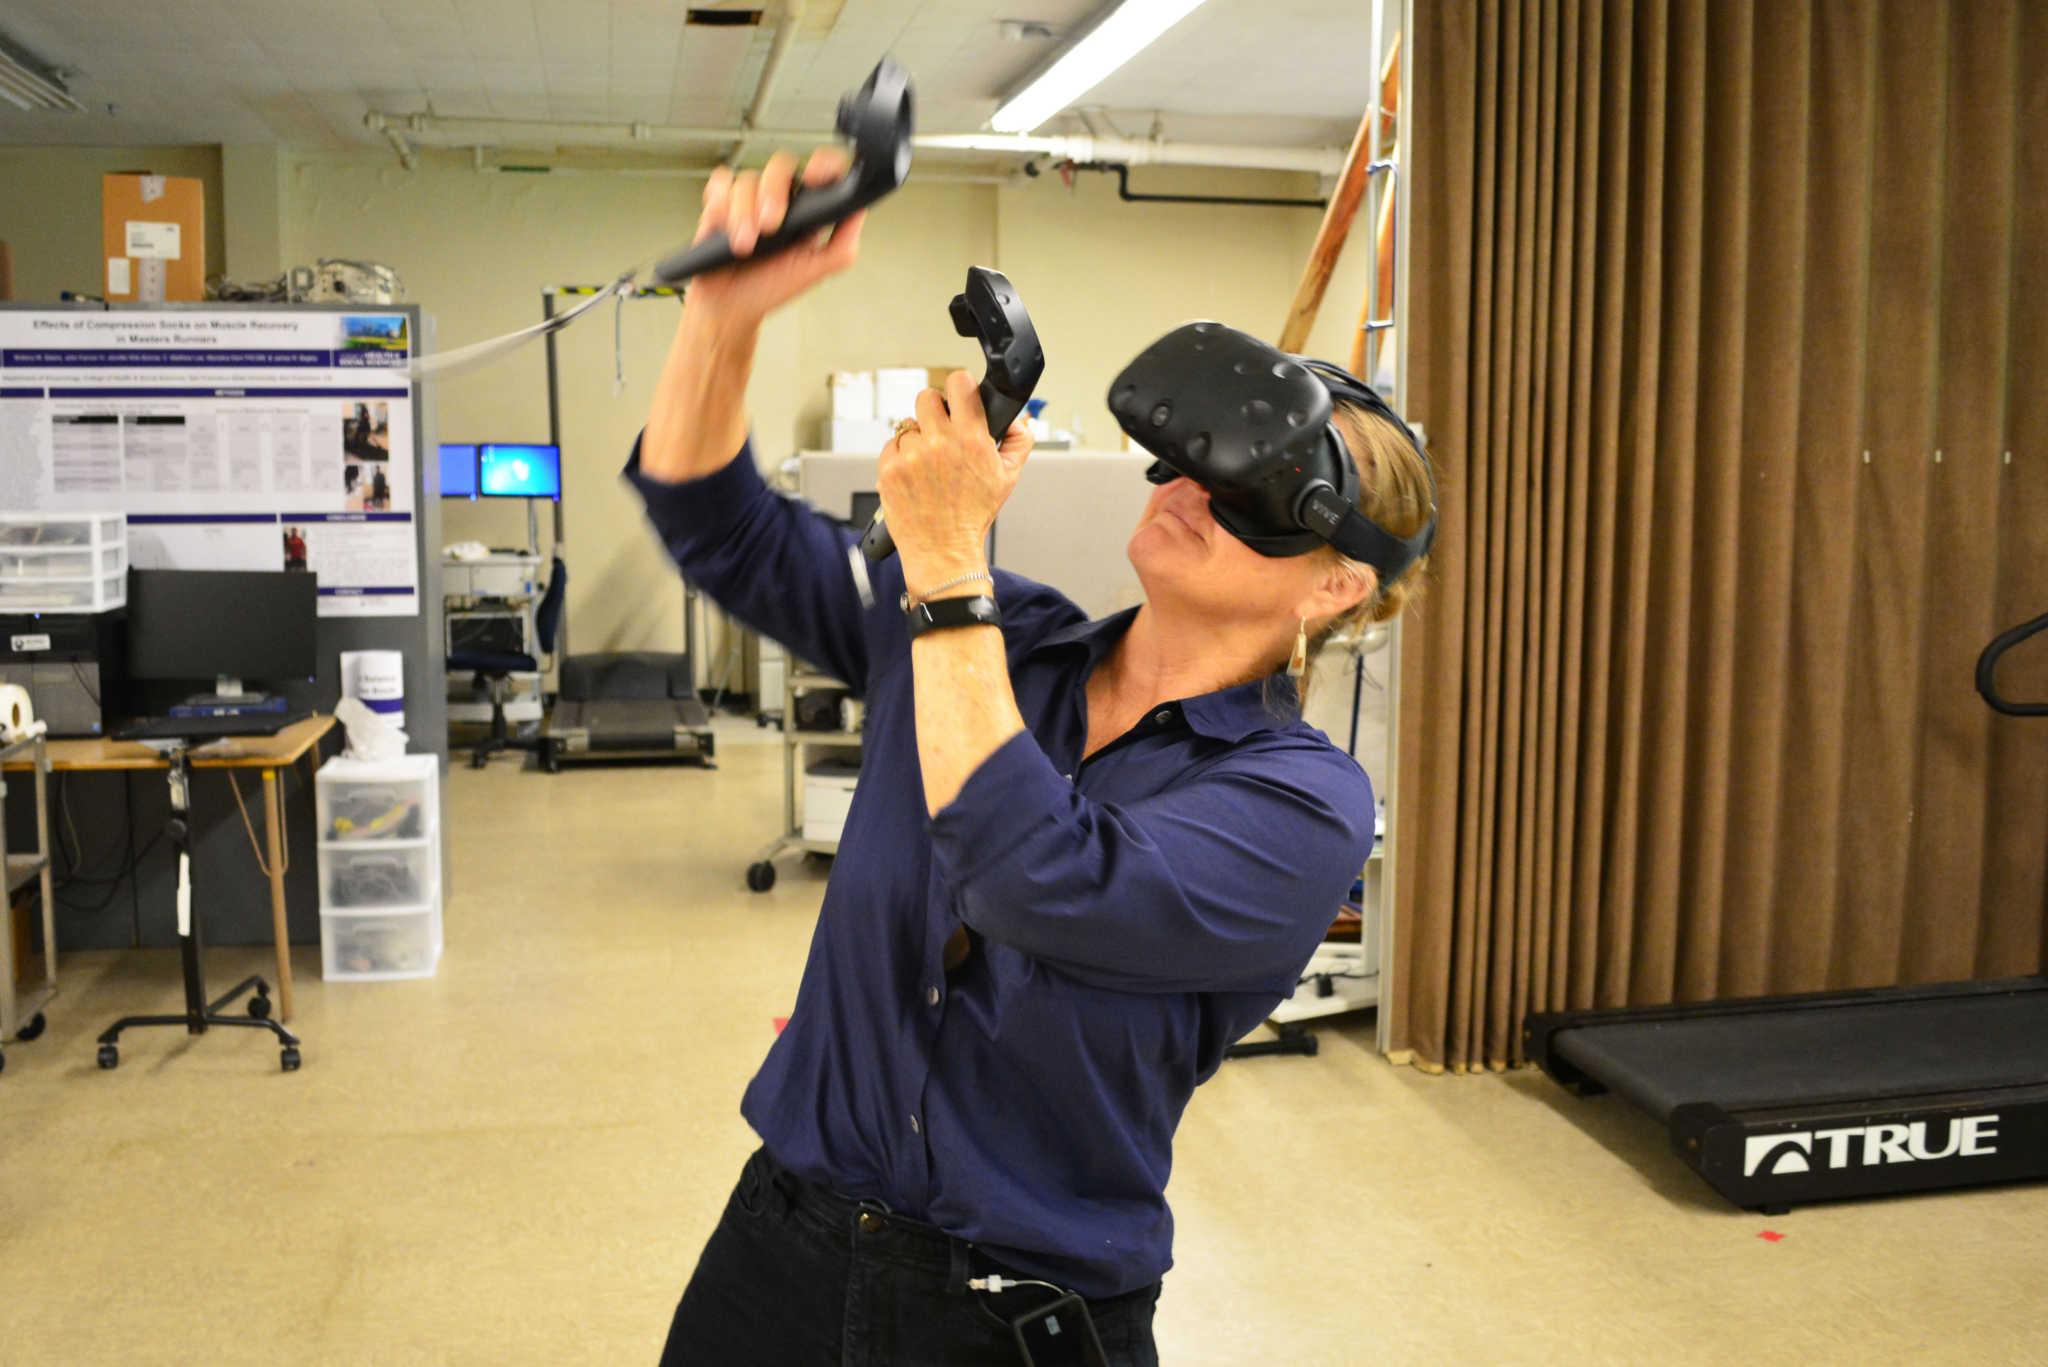 Professor Marialice Kern boxes with a virtual reality device in the Gym SF State on Monday, September 4, 2017. (Bryan Ramirez/Golden Gate Xpress)